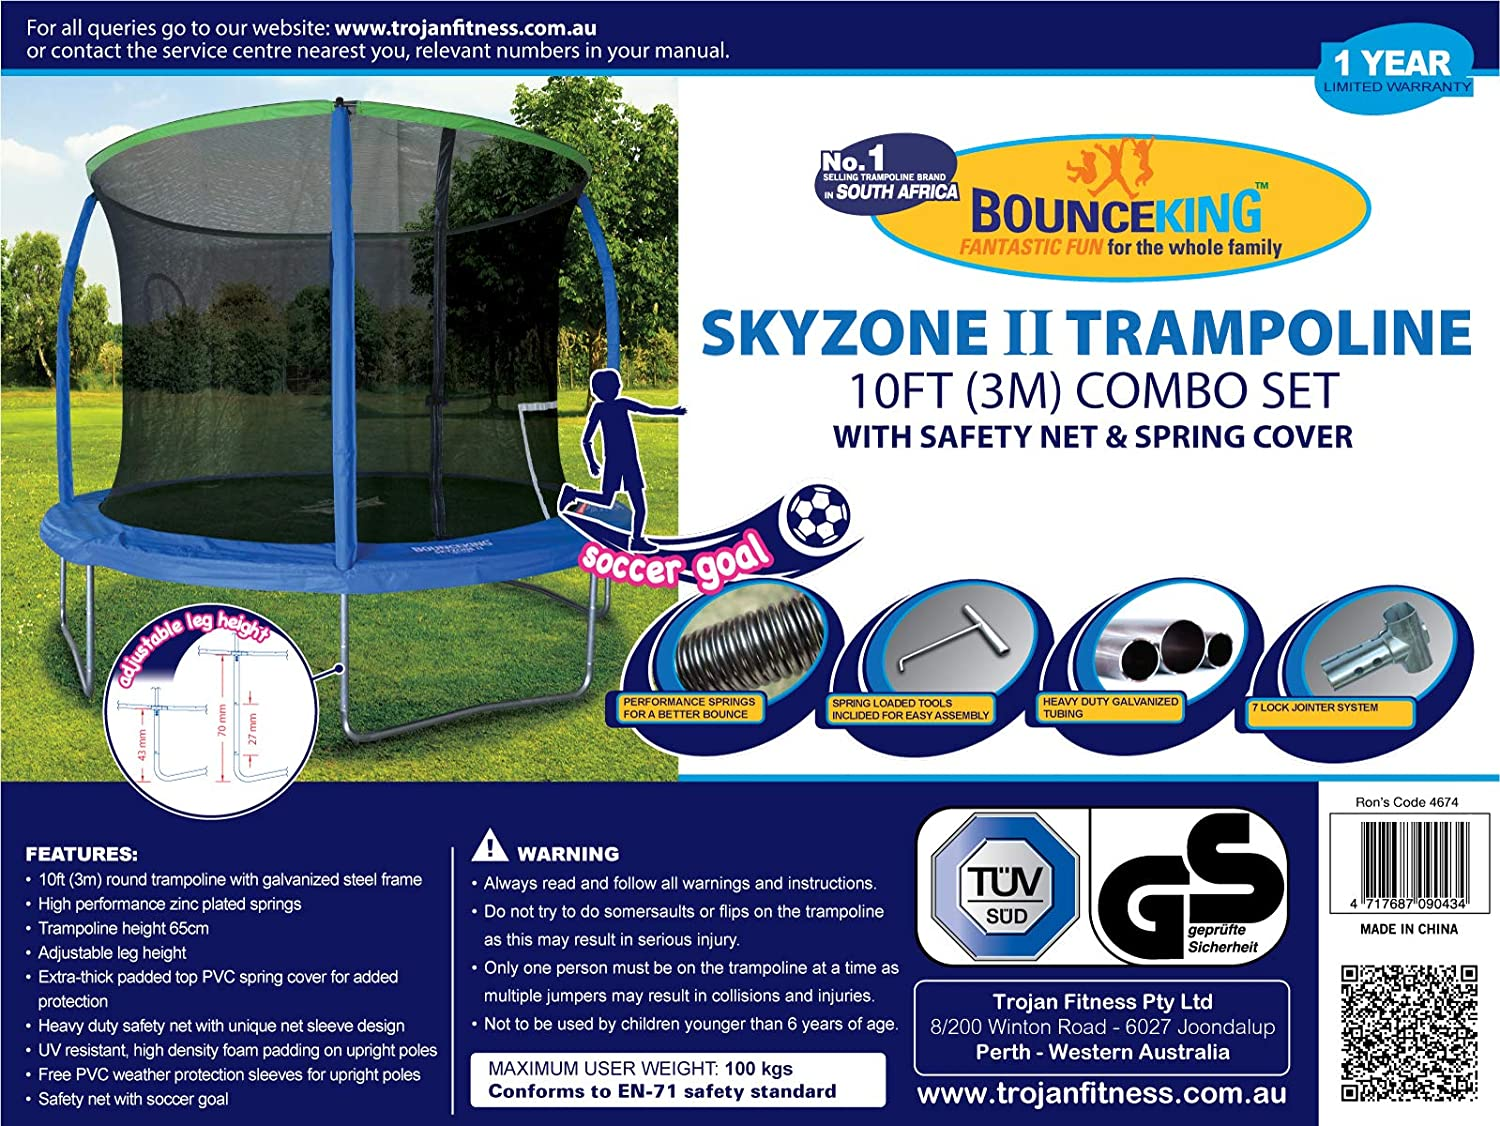 Bounceking Trampoline 10 Foot Inc Spring Cover & Safety Net Adjustable Height